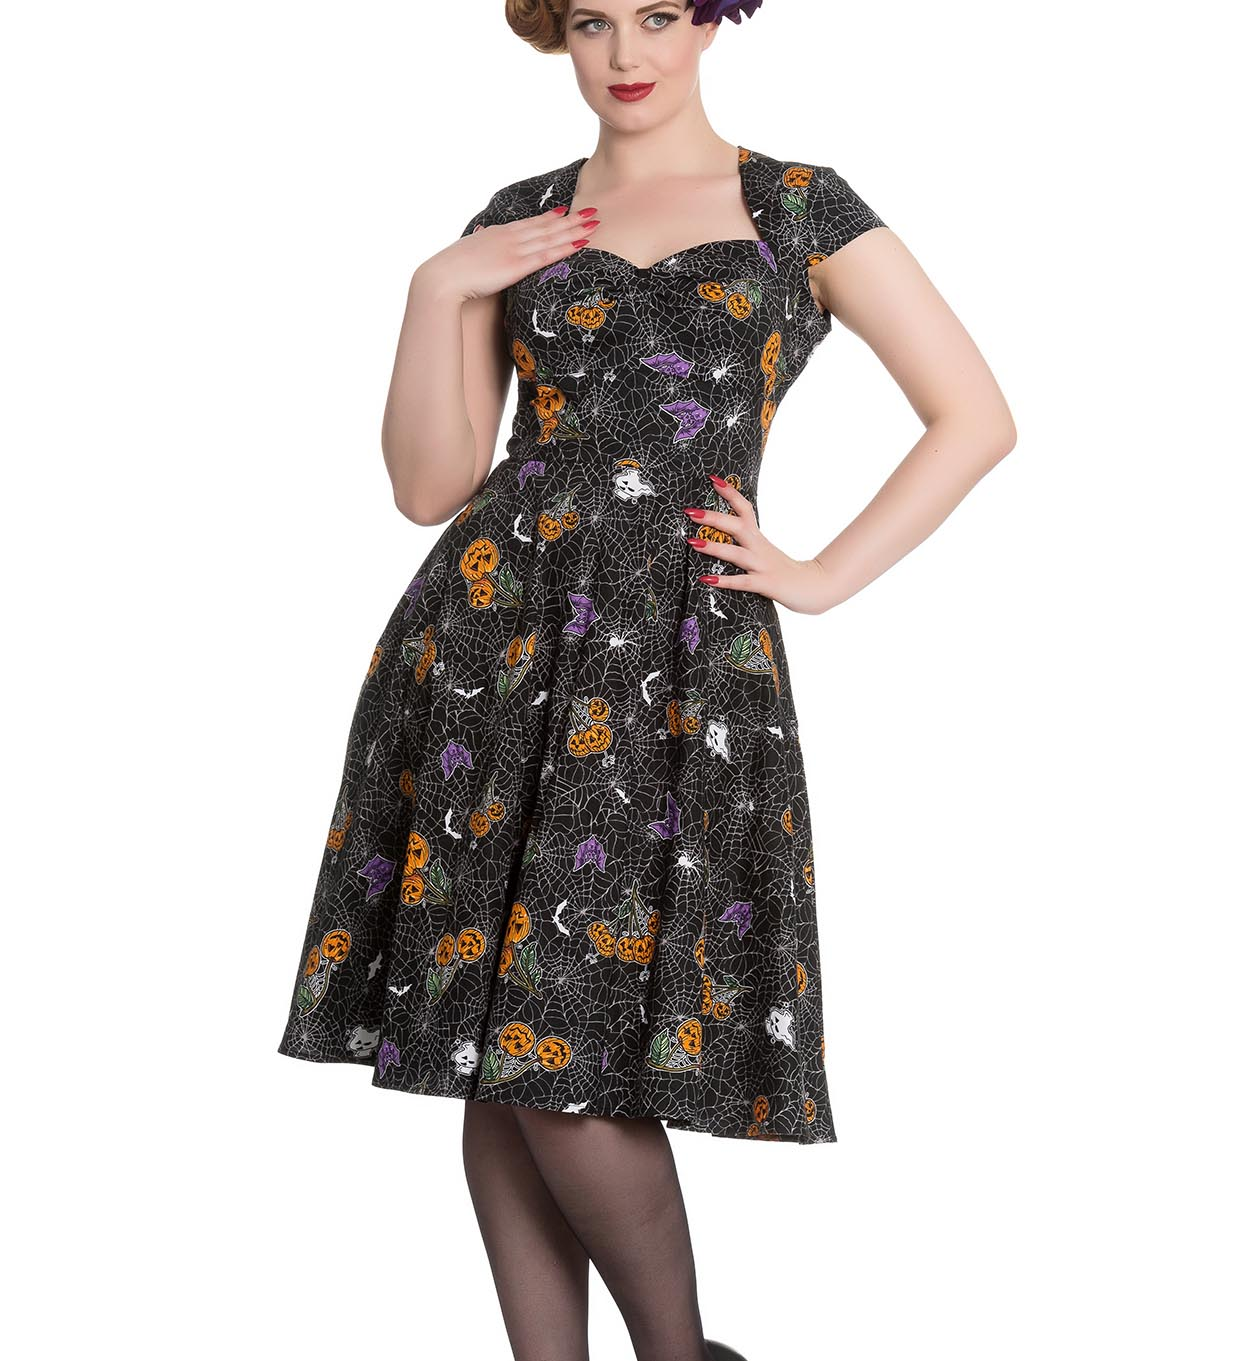 Hell-Bunny-Black-Pinup-50s-Goth-Webs-Dress-HARLOW-Halloween-All-Sizes thumbnail 7